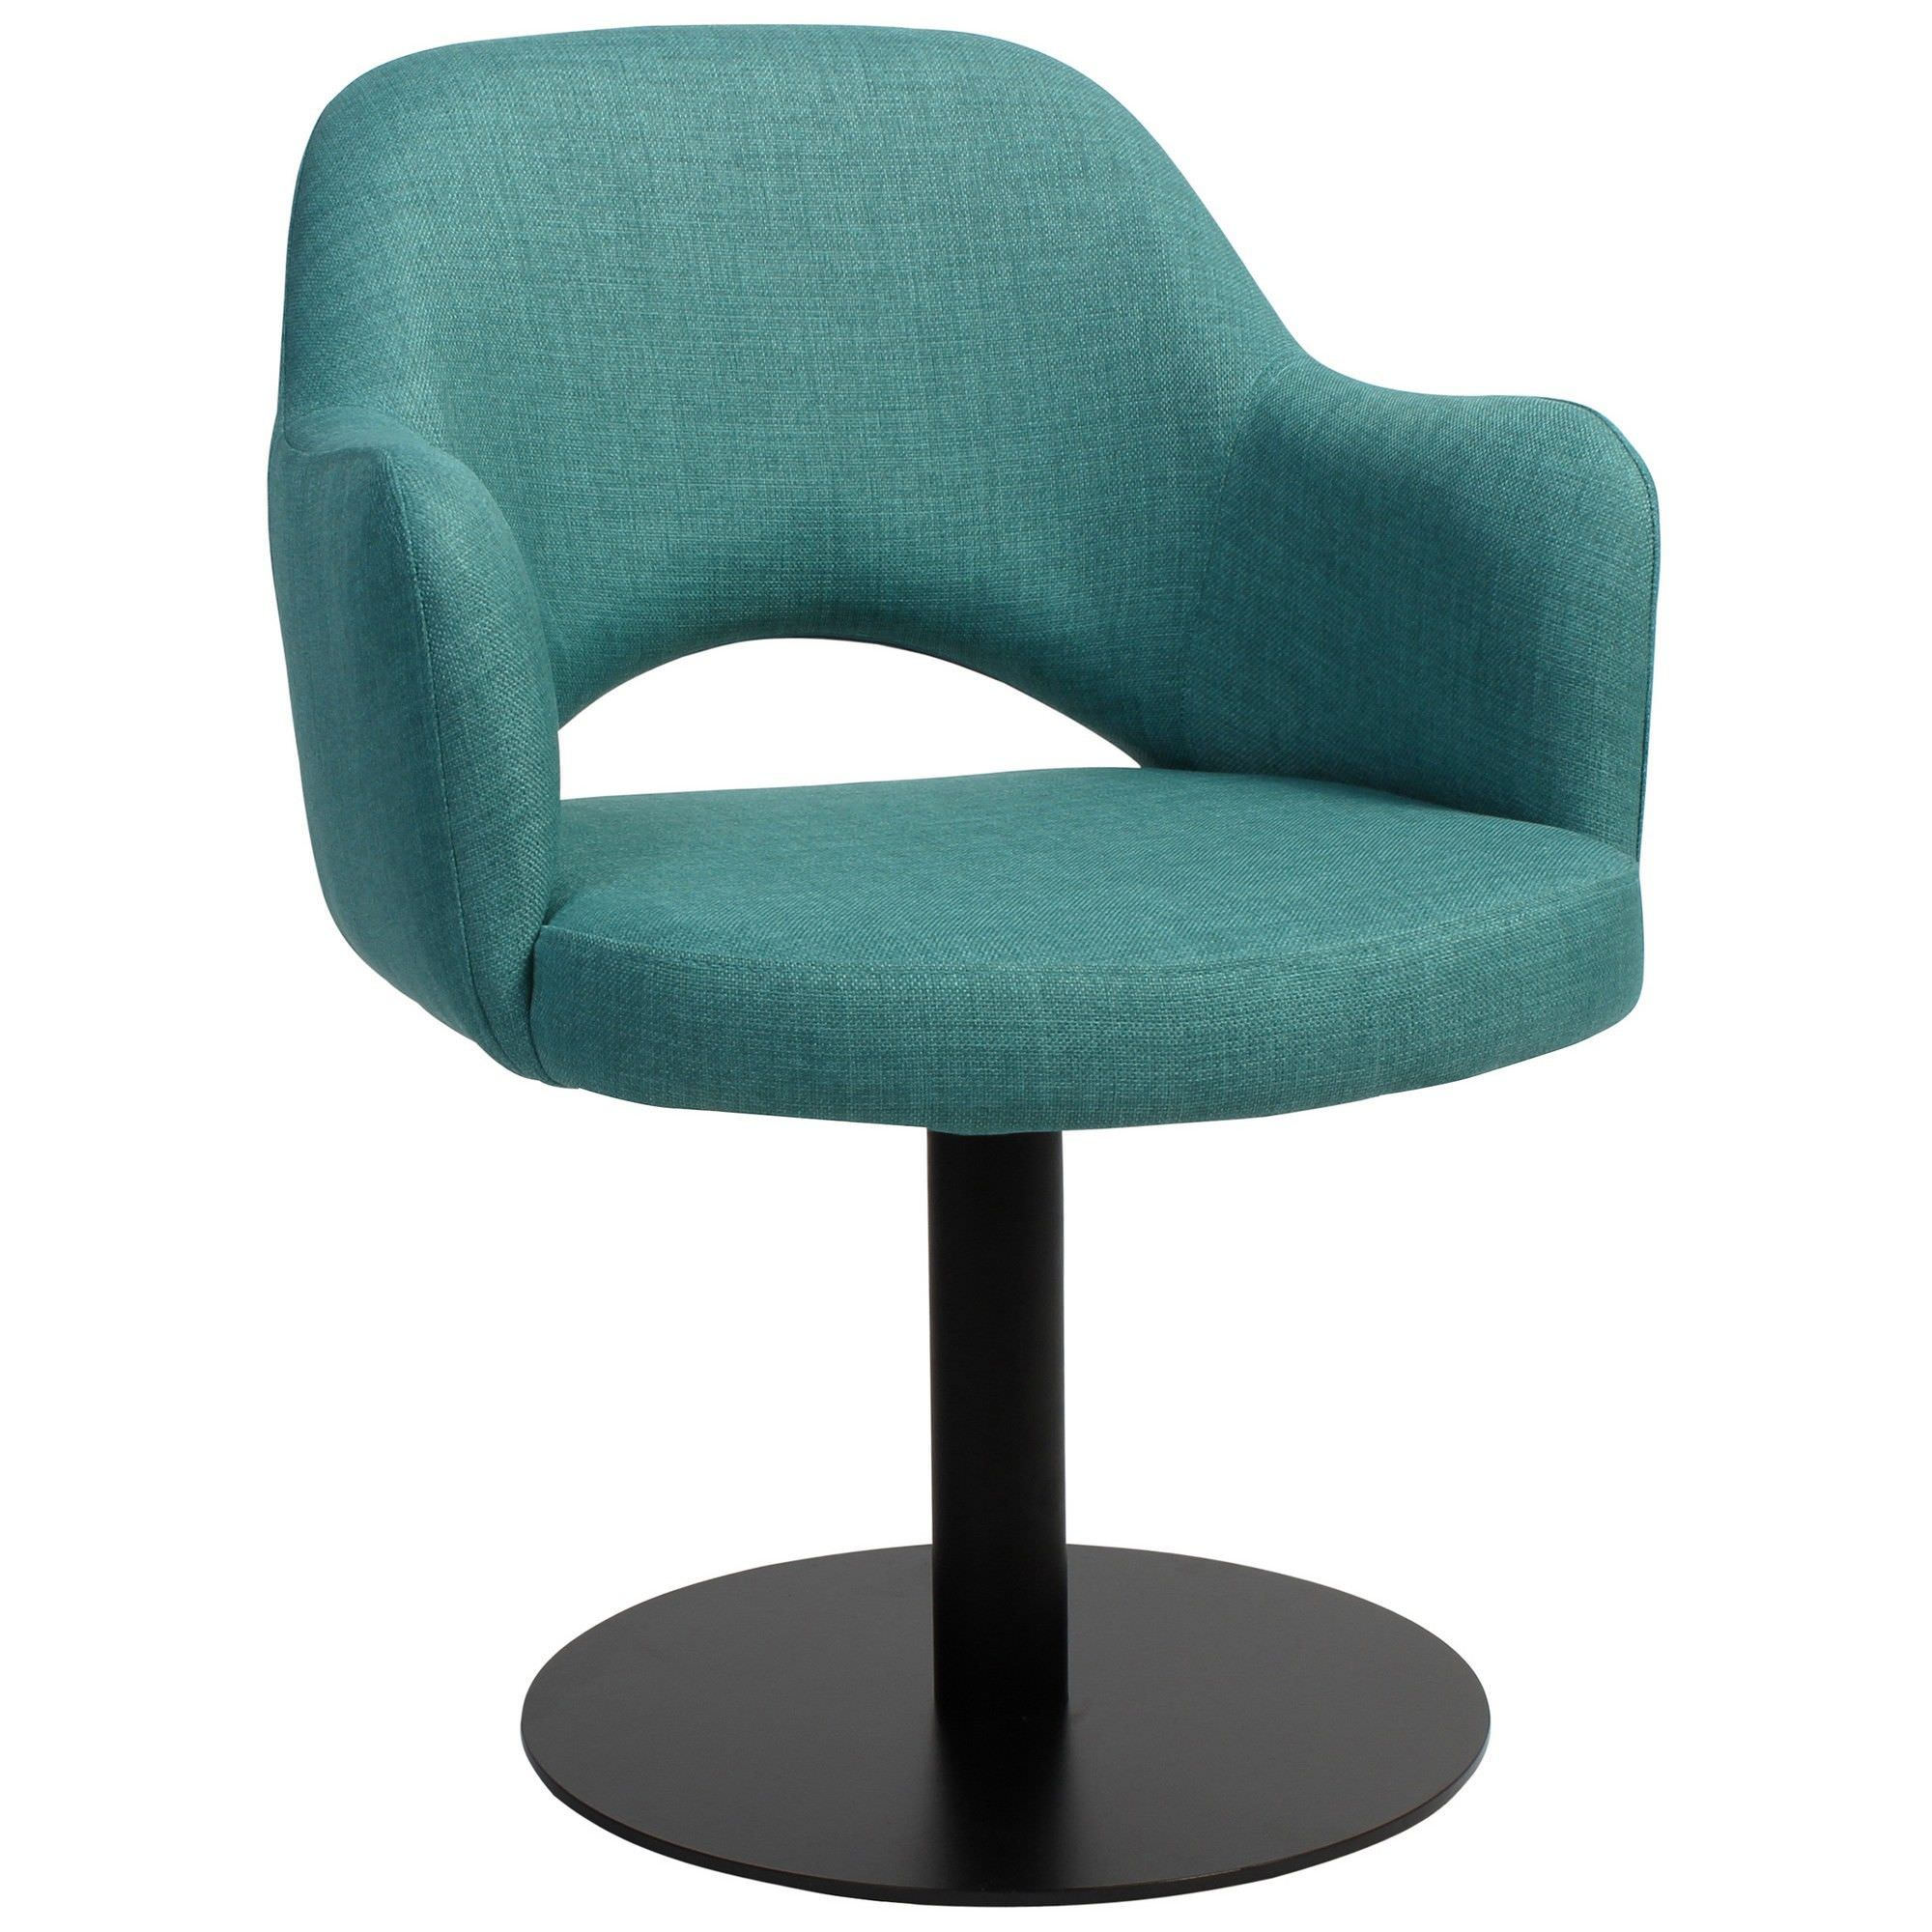 Albury Commercial Grade Fabric Dining Stool with Arm, Metal Disc Leg, Teal / Black